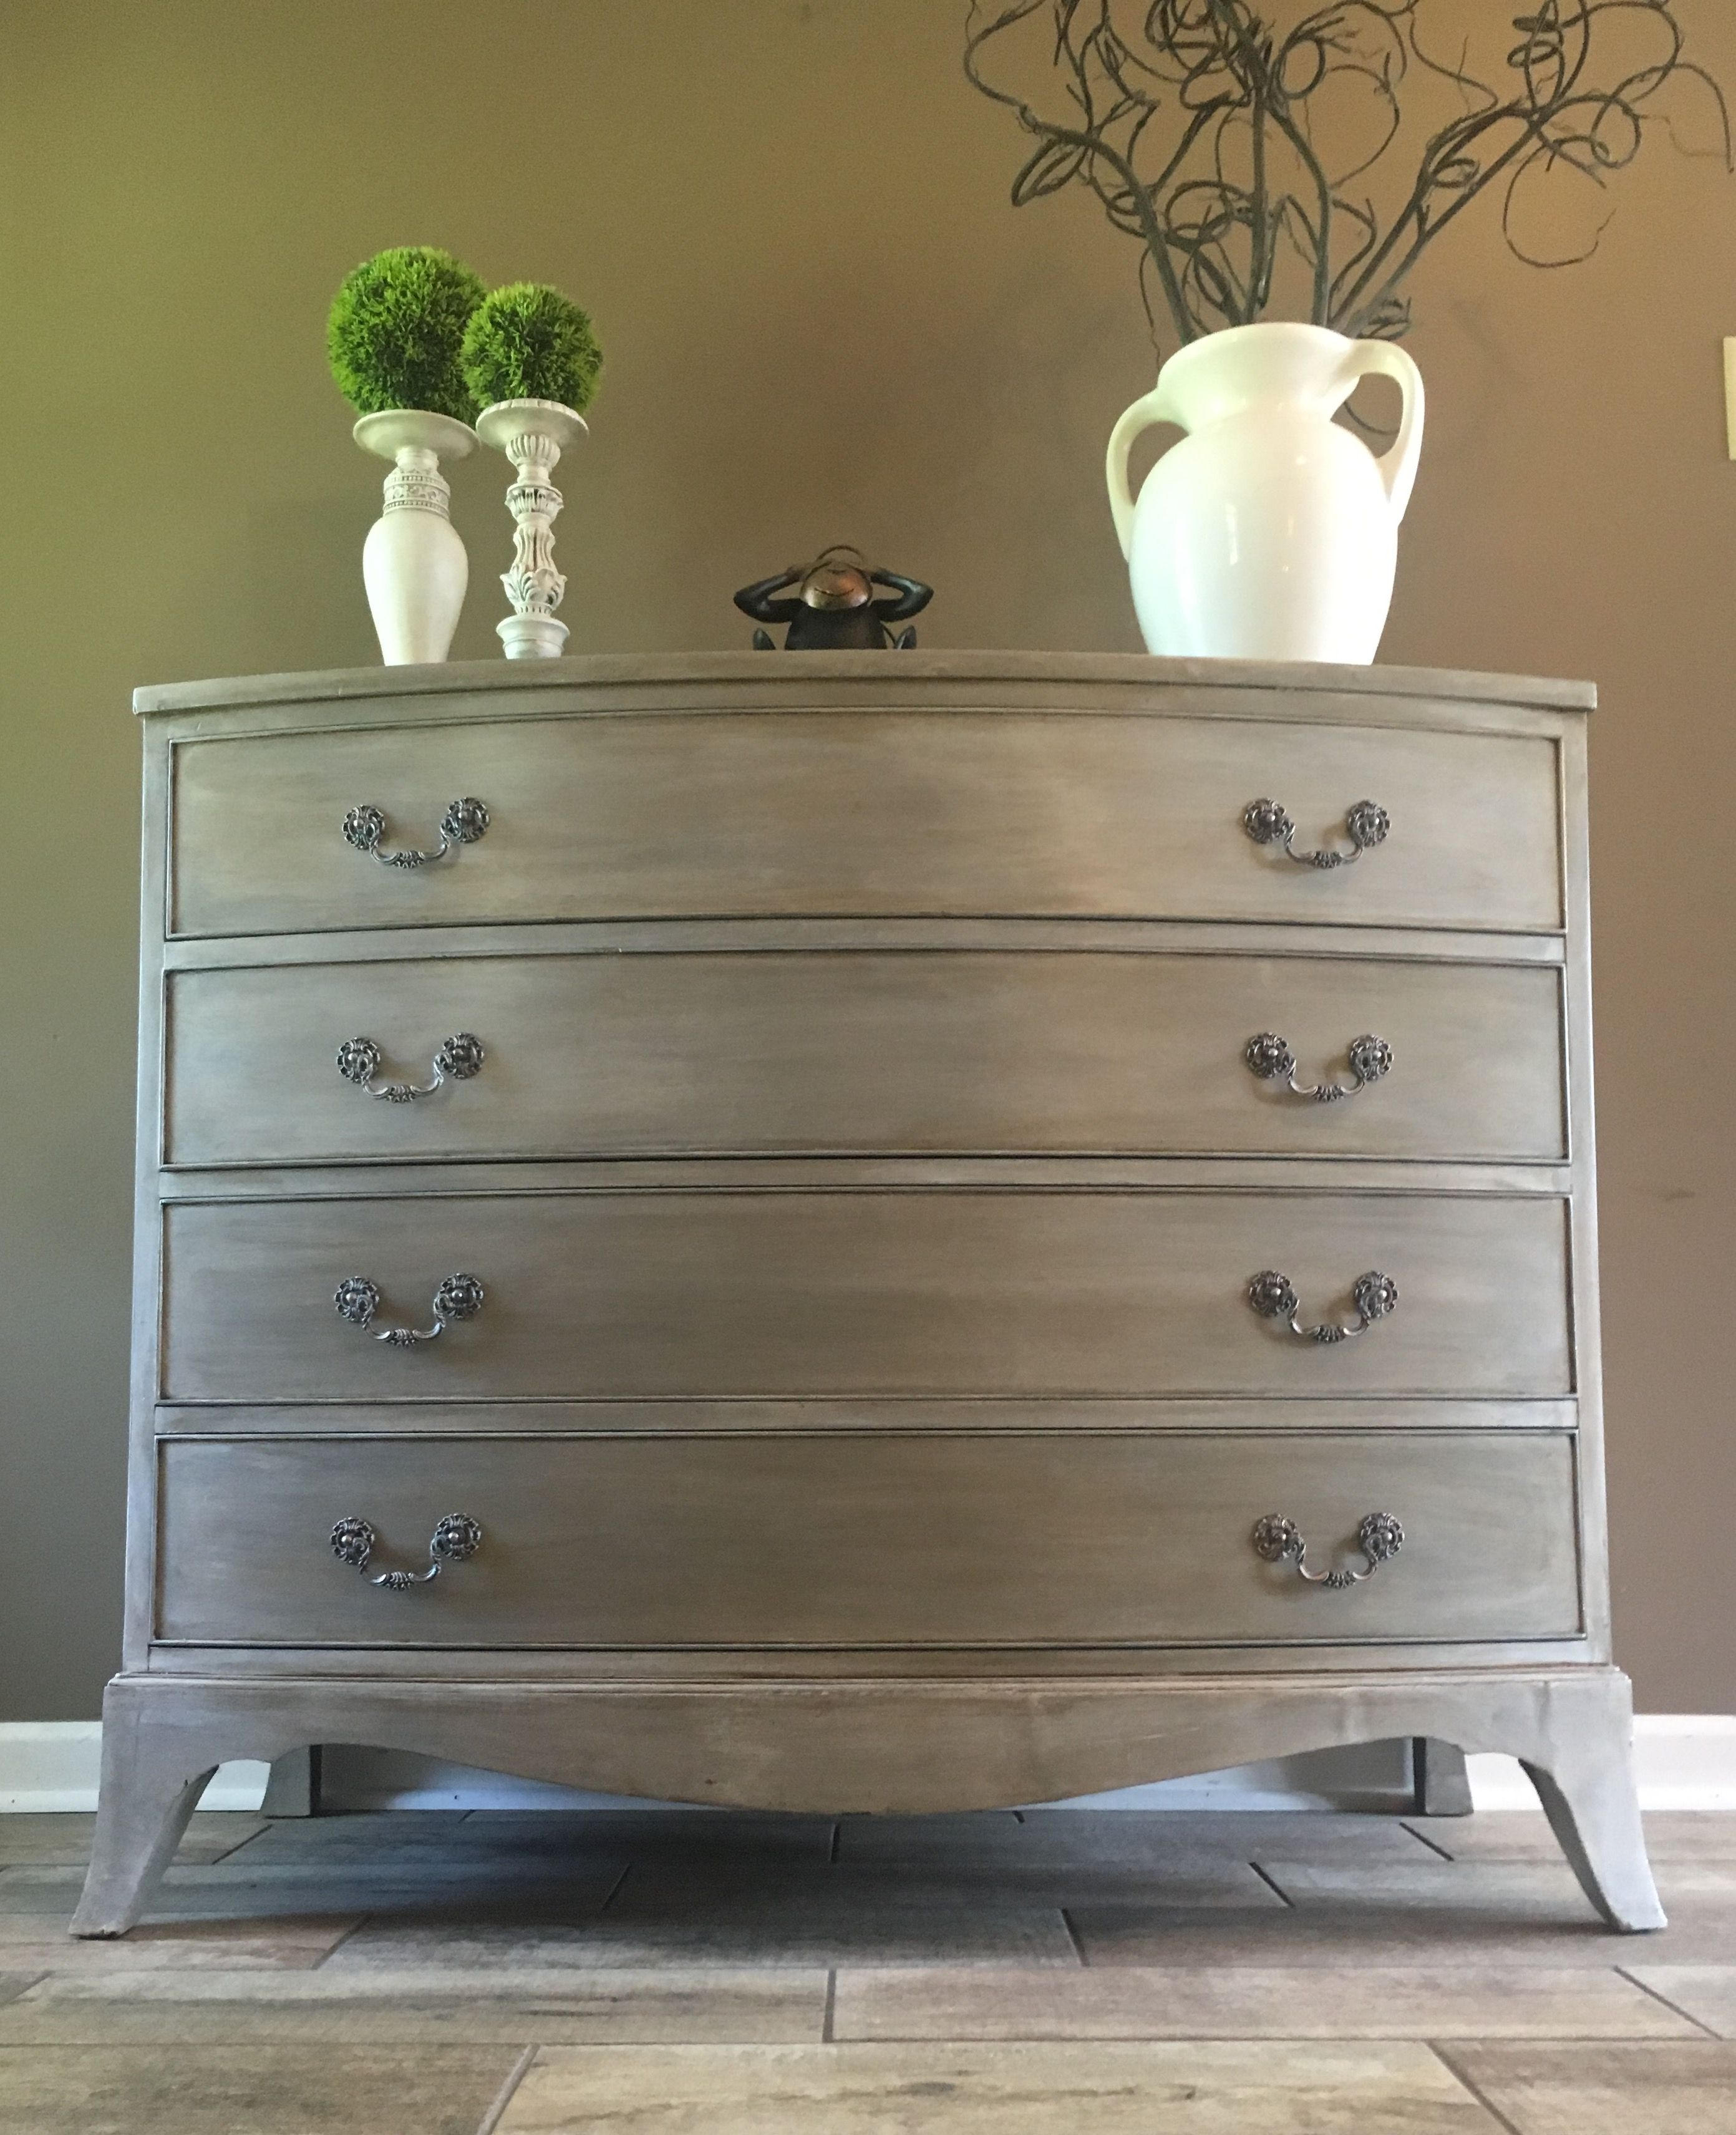 French Linen Chalk Paint Coffee Table: Annie Sloan Old Ochre, Dry Brush French Linen, Dry Brush